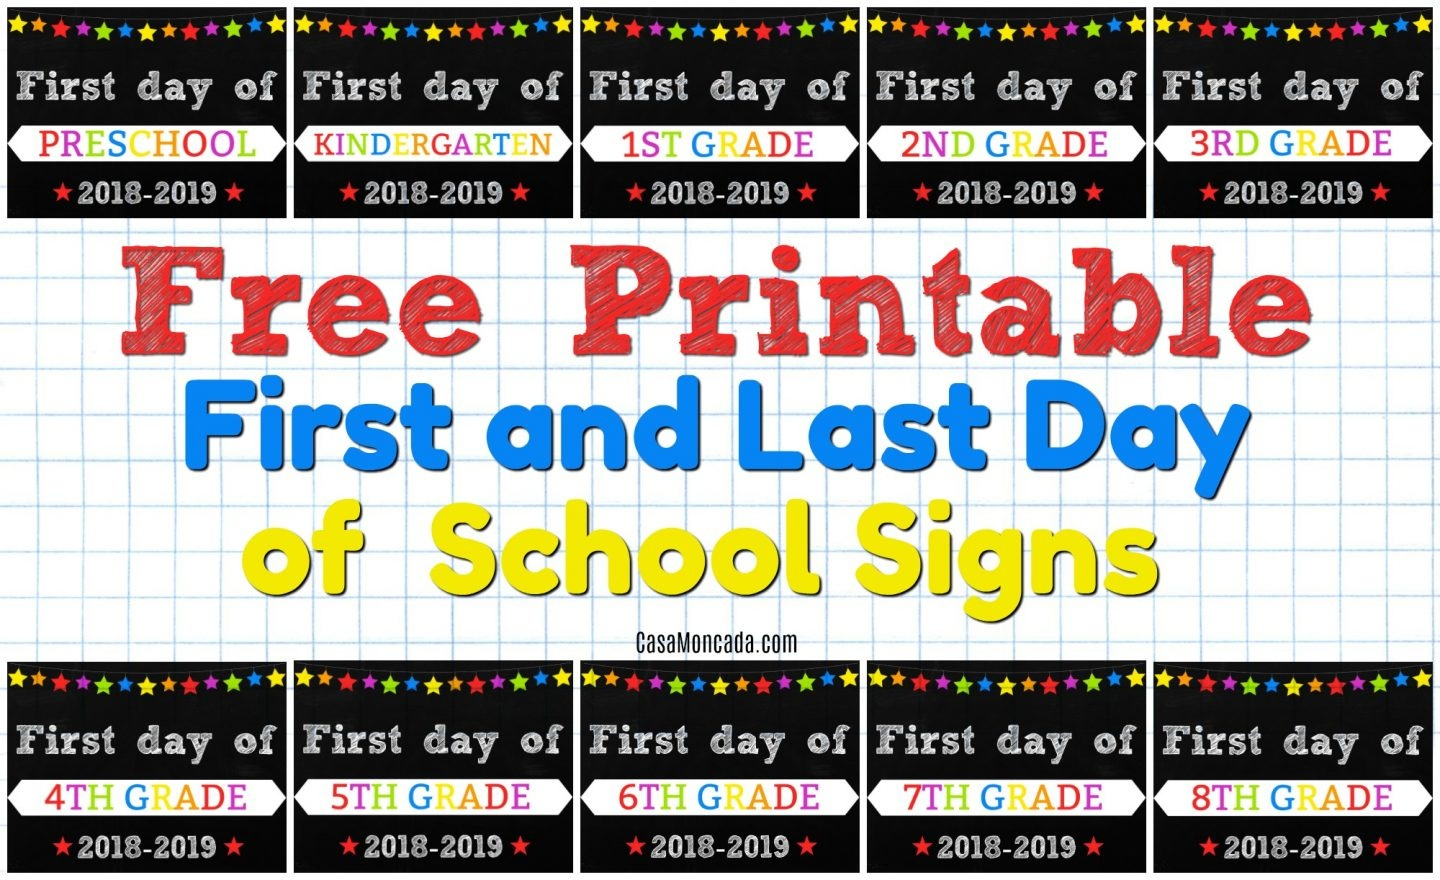 Free Printable First And Last Day Of School Signs - Casa Moncada - Free Printable Back To School Signs